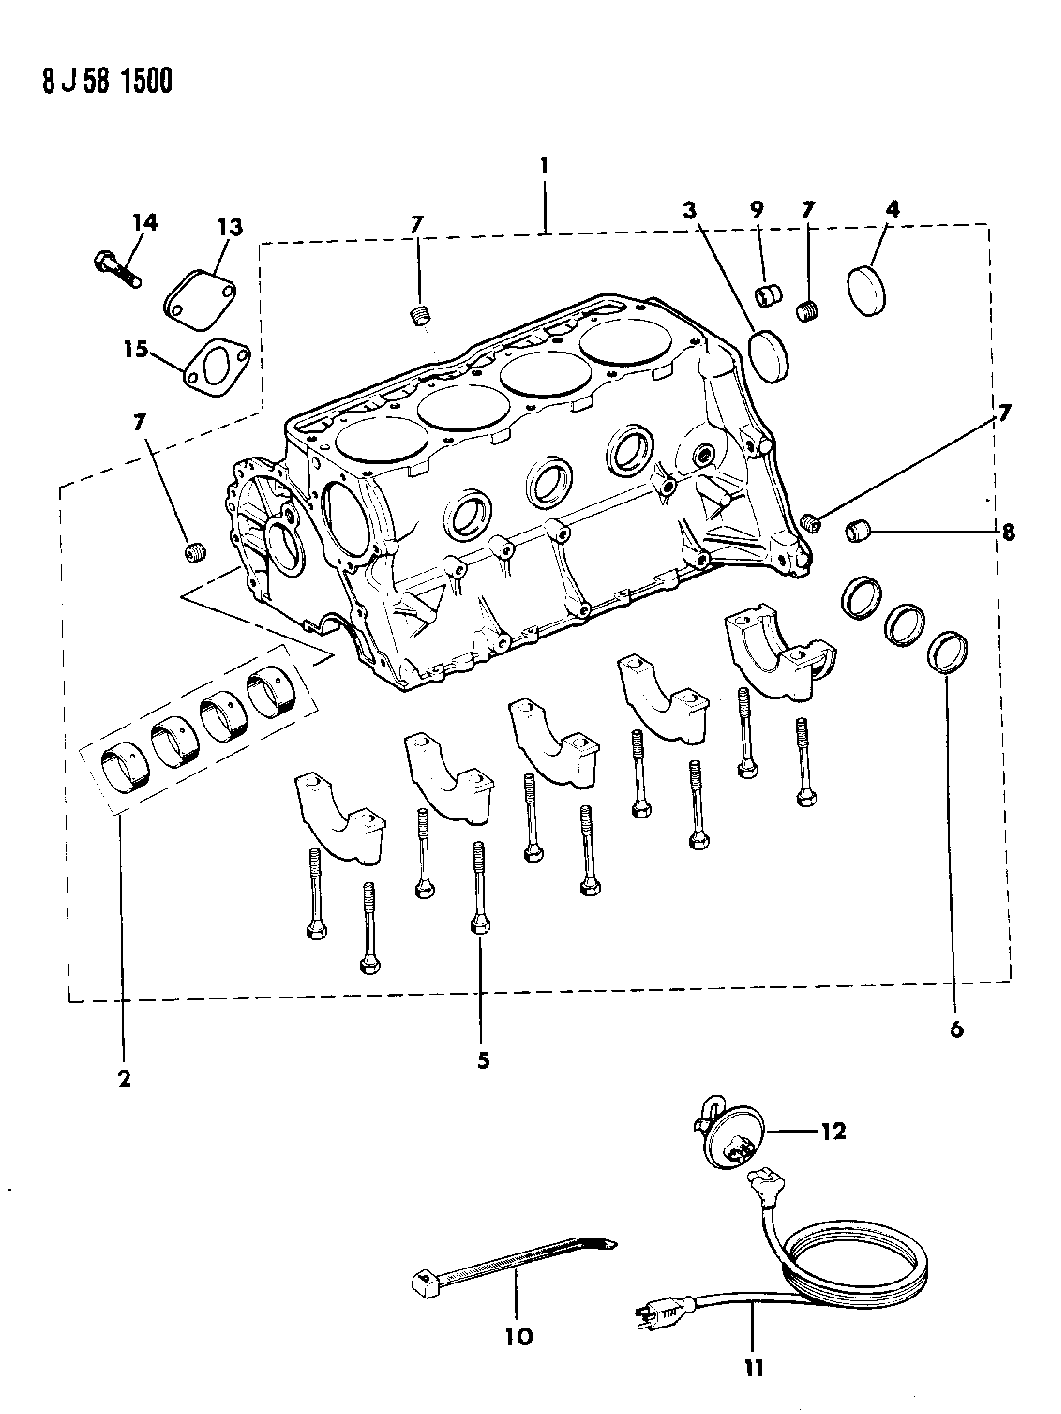 110 Cc Head Diagram